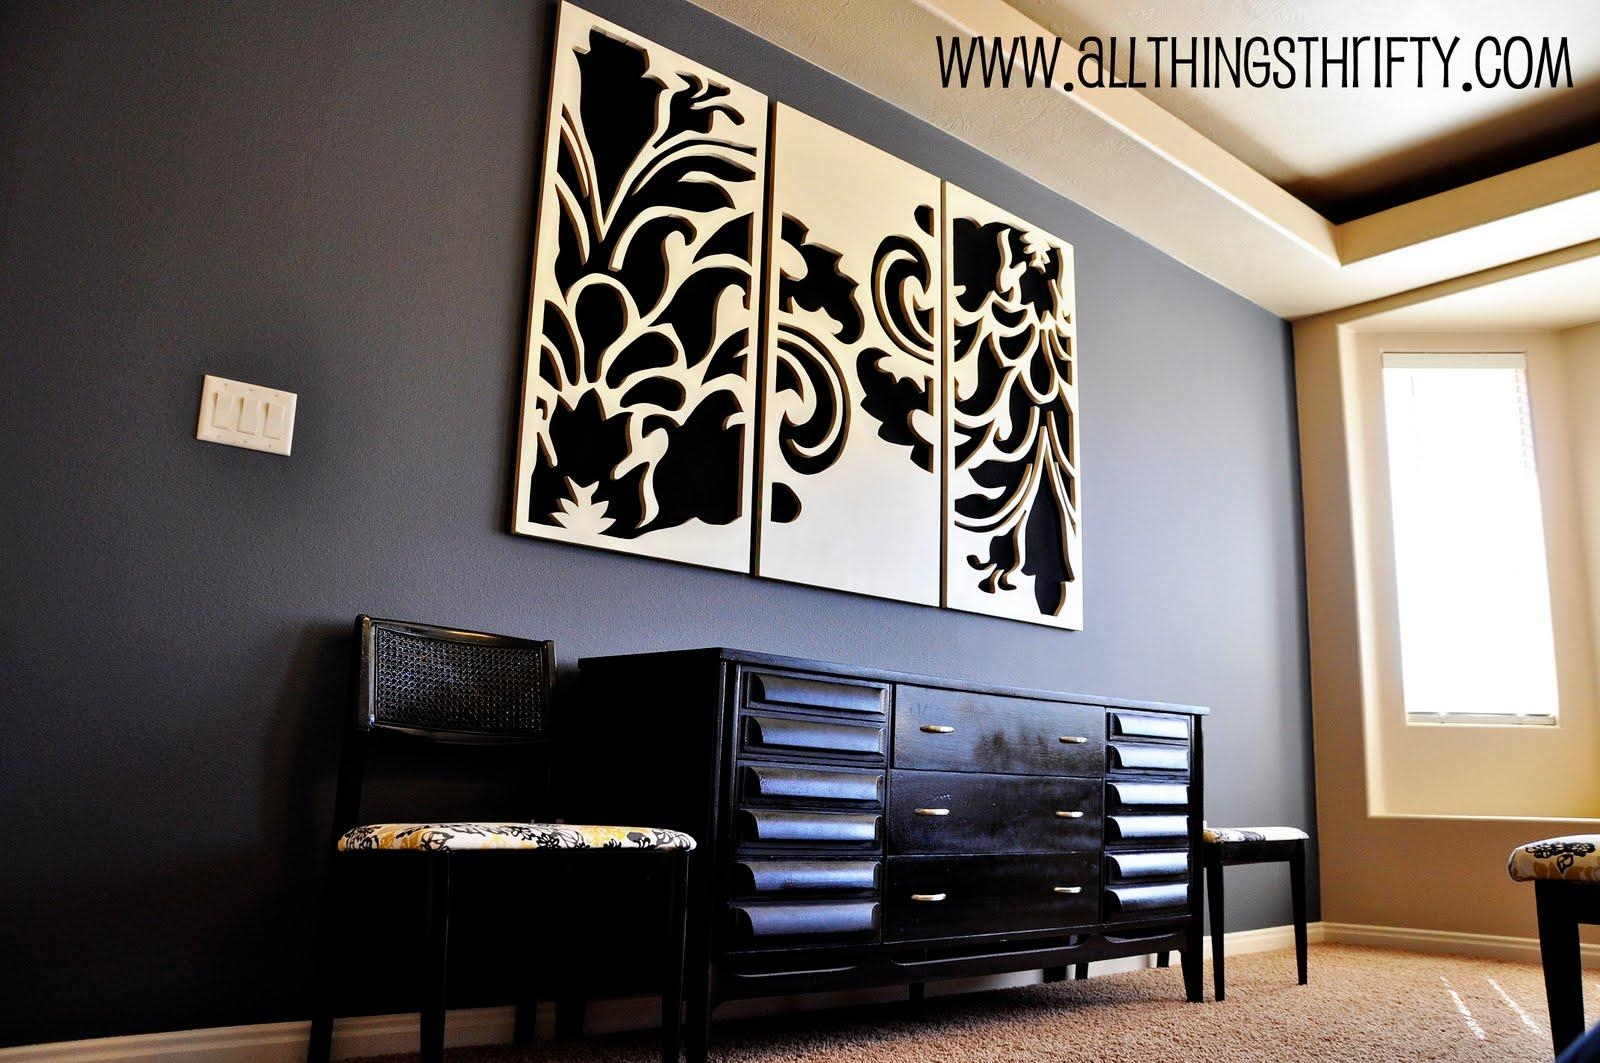 Sytycd Week 7: Building Materialsdecorative Wall Art | All With Regard To Black And White Damask Wall Art (View 7 of 20)